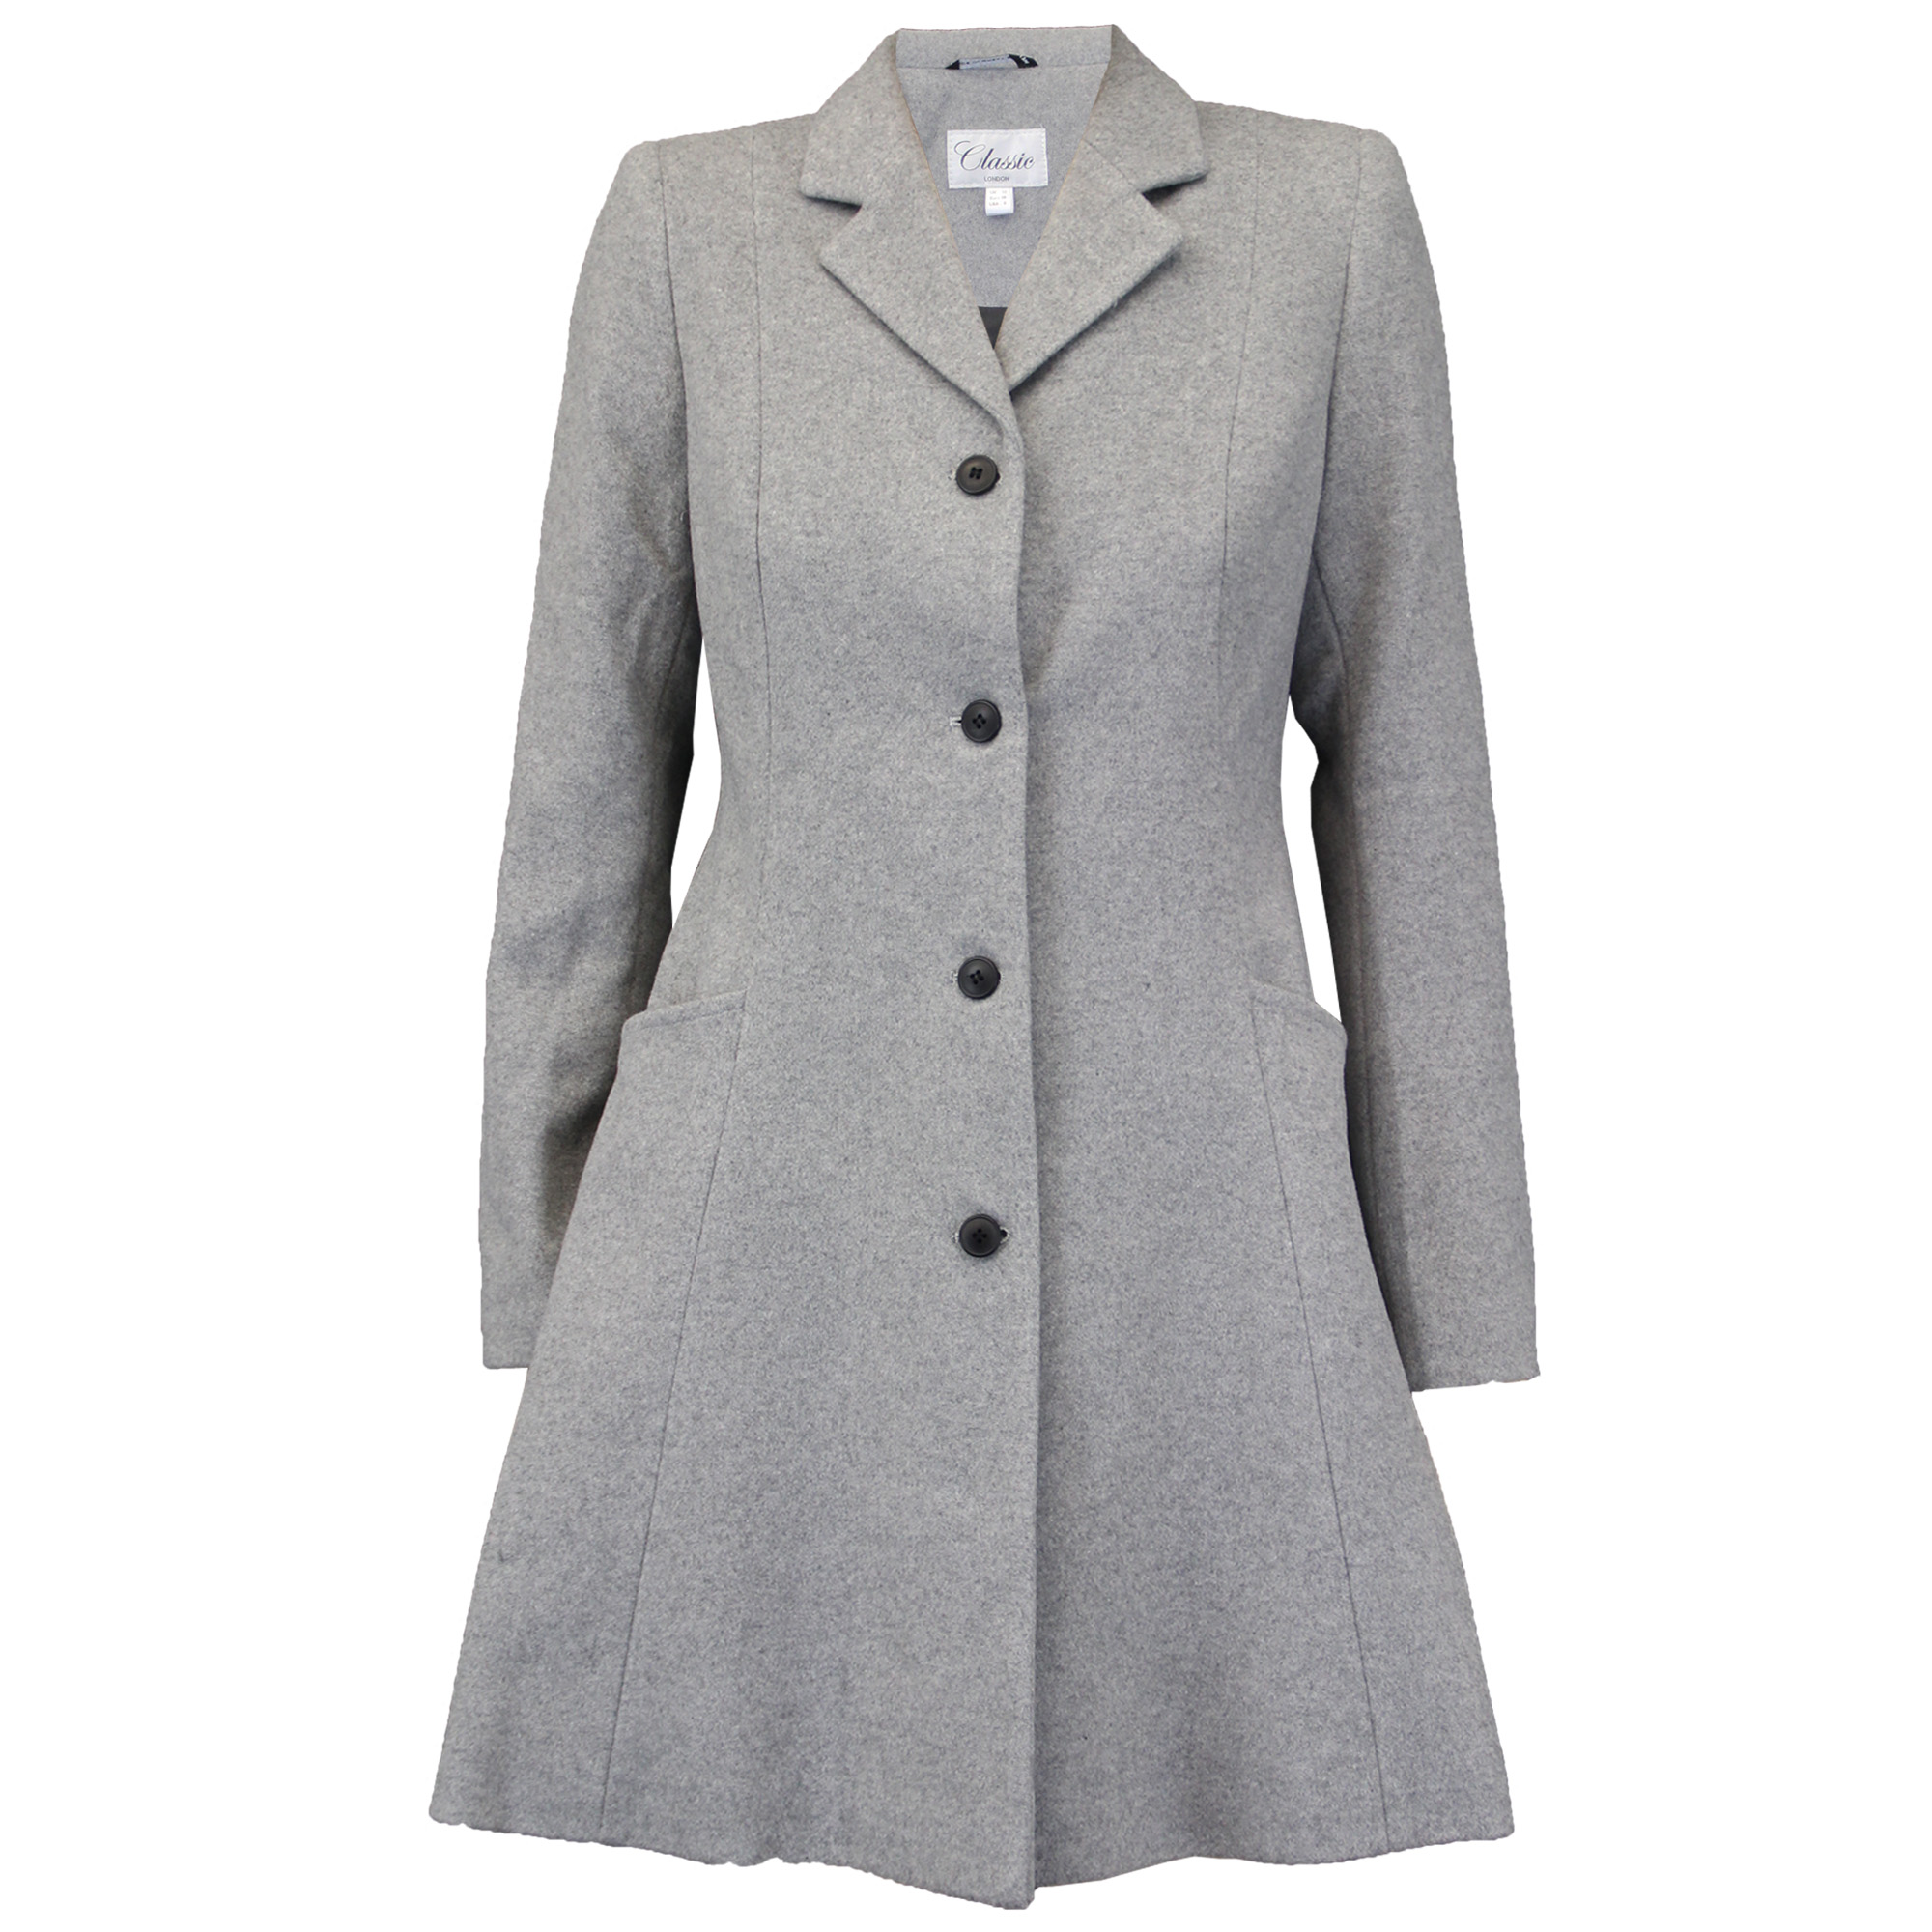 Women's Jackets. Feel prepared for any weather with women's coats and jackets from Kohl's. Whether you're looking for a stylish overcoat to wear on special occasions or an extra layer for everyday wear, you'll find comfortable coats and jackets in a variety of styles and sizes such as women's faux fur coats and fleece pullovers.. Orchestrate the perfect ensemble with our wide.